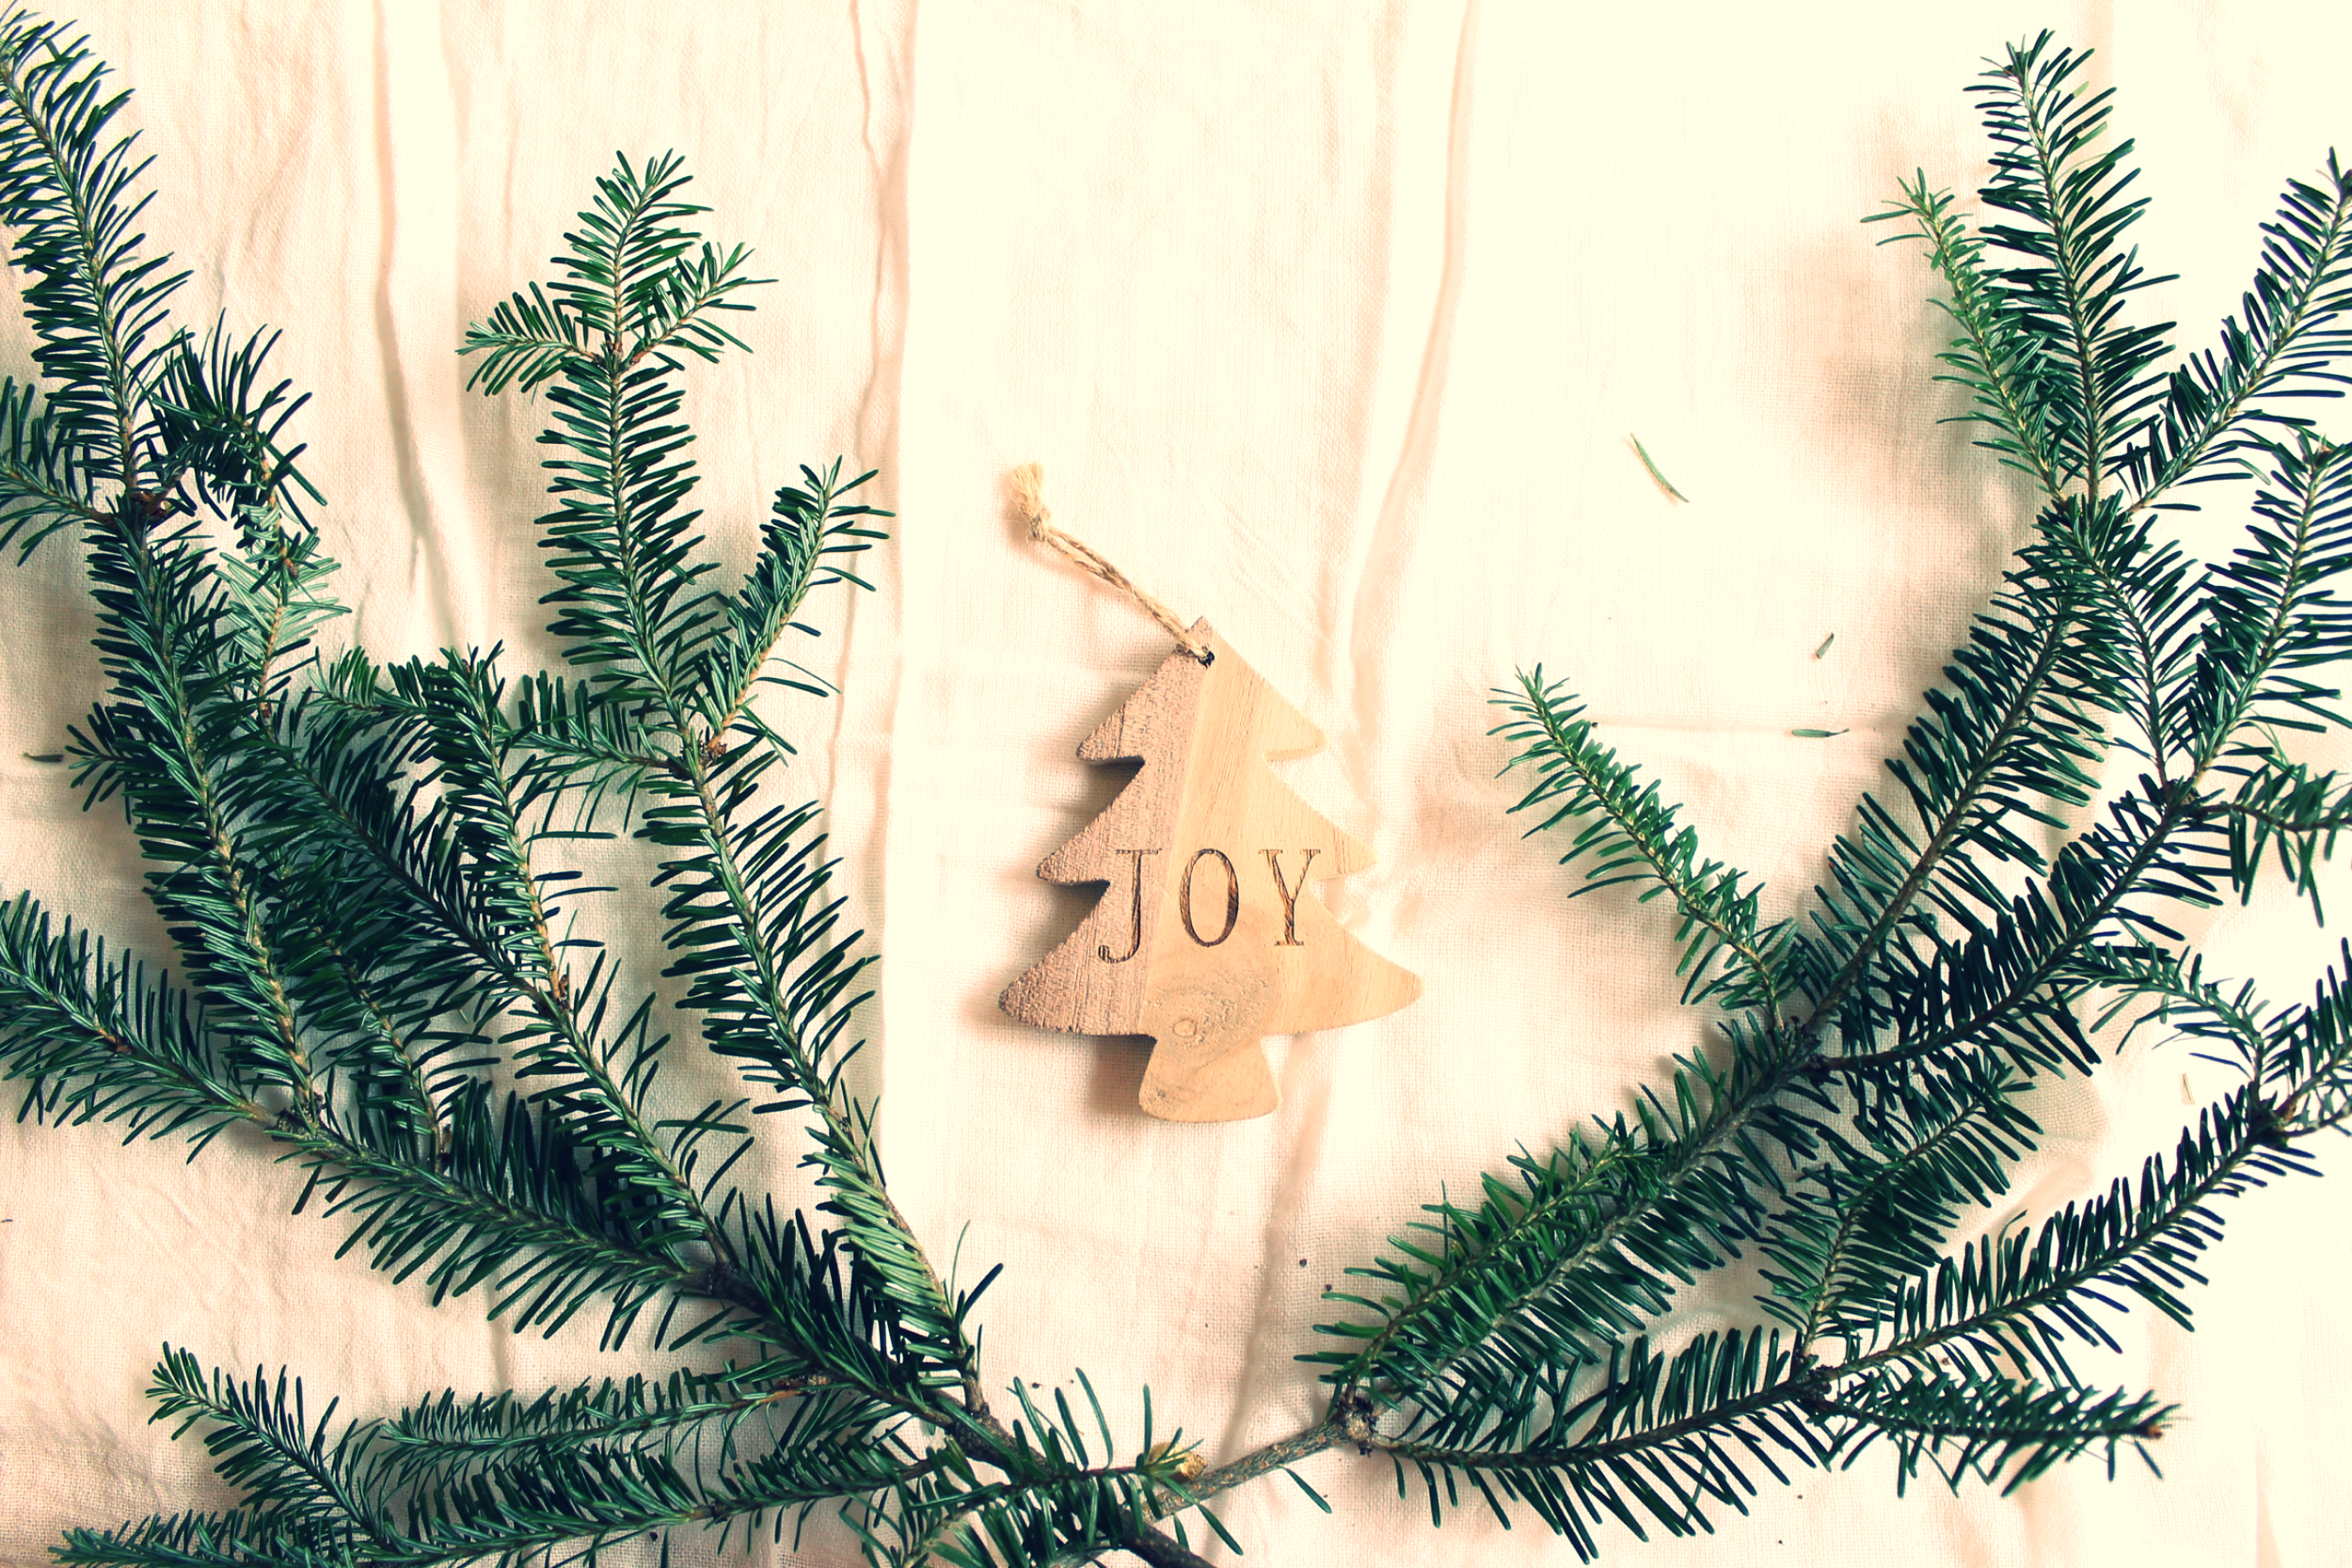 getting lost in wonder this christmas, finding joy   Feathers & Roots